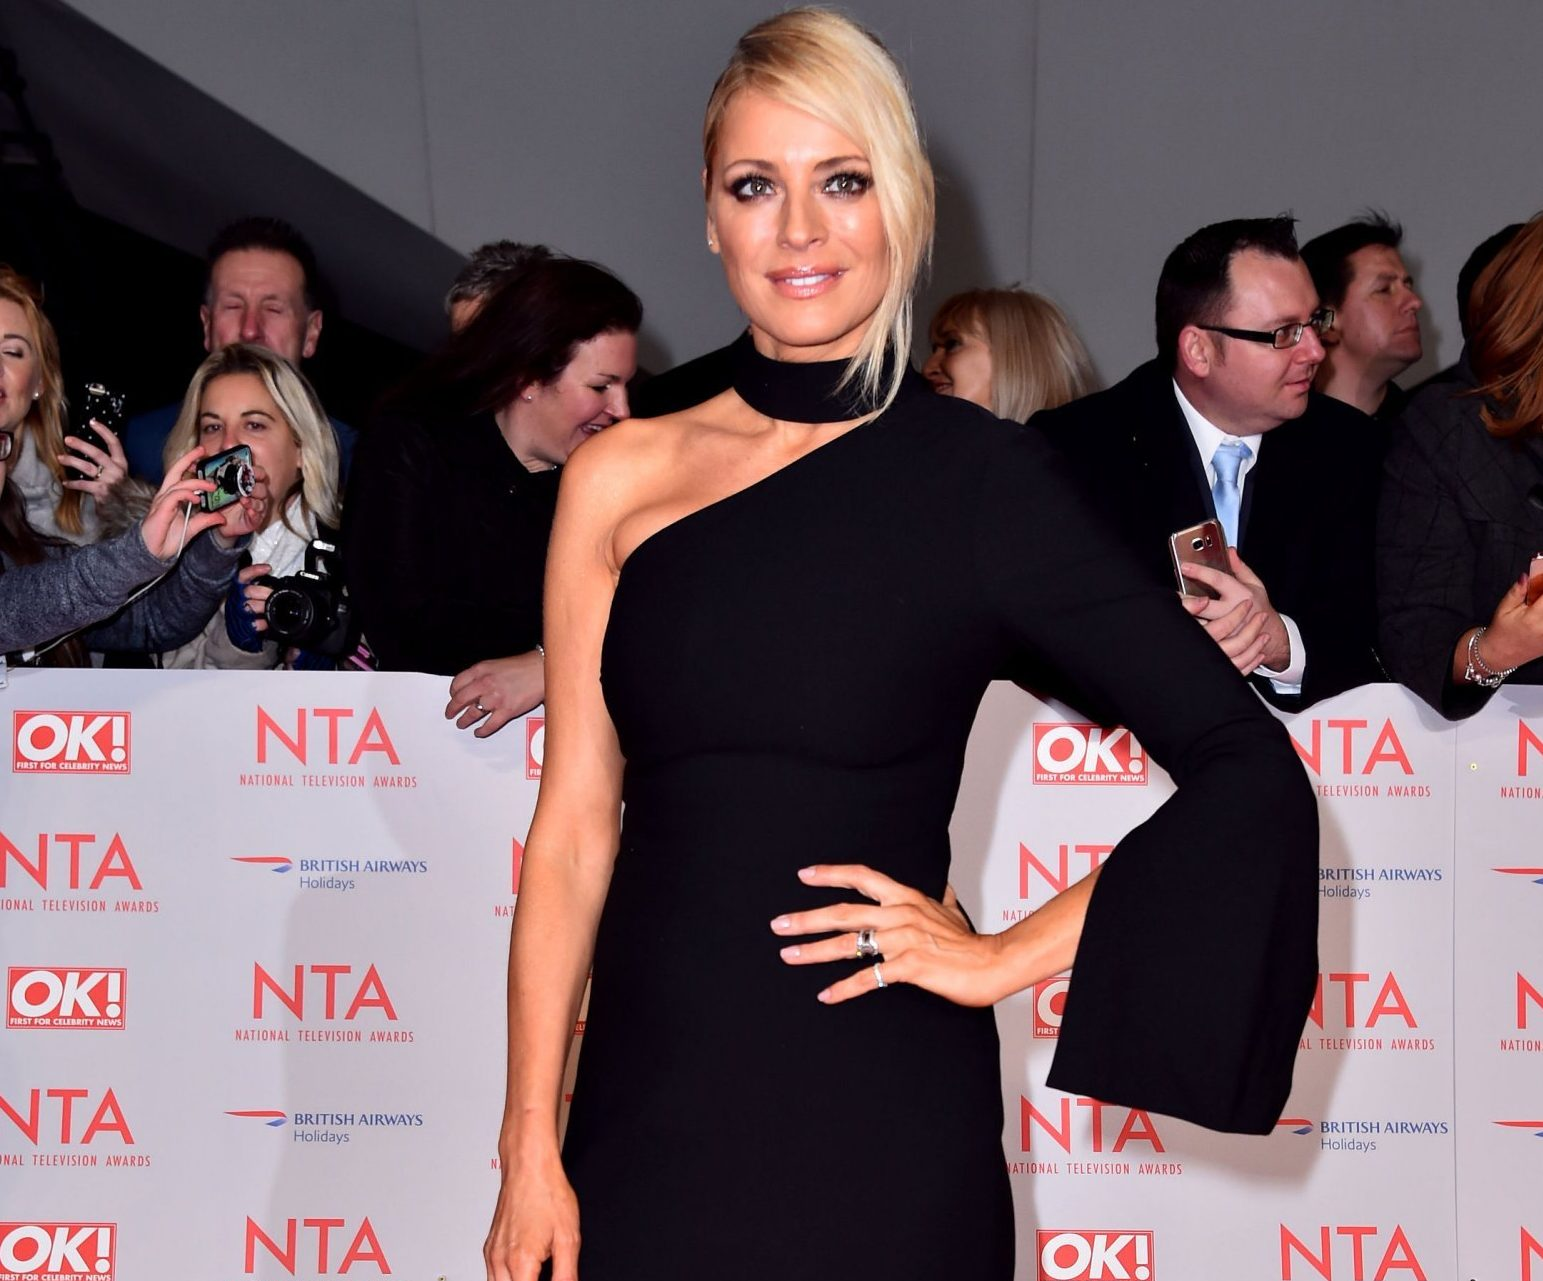 Strictly Come Dancing's Tess Daly reveals how she covers wardrobe malfunctions: 'I have a contingency'